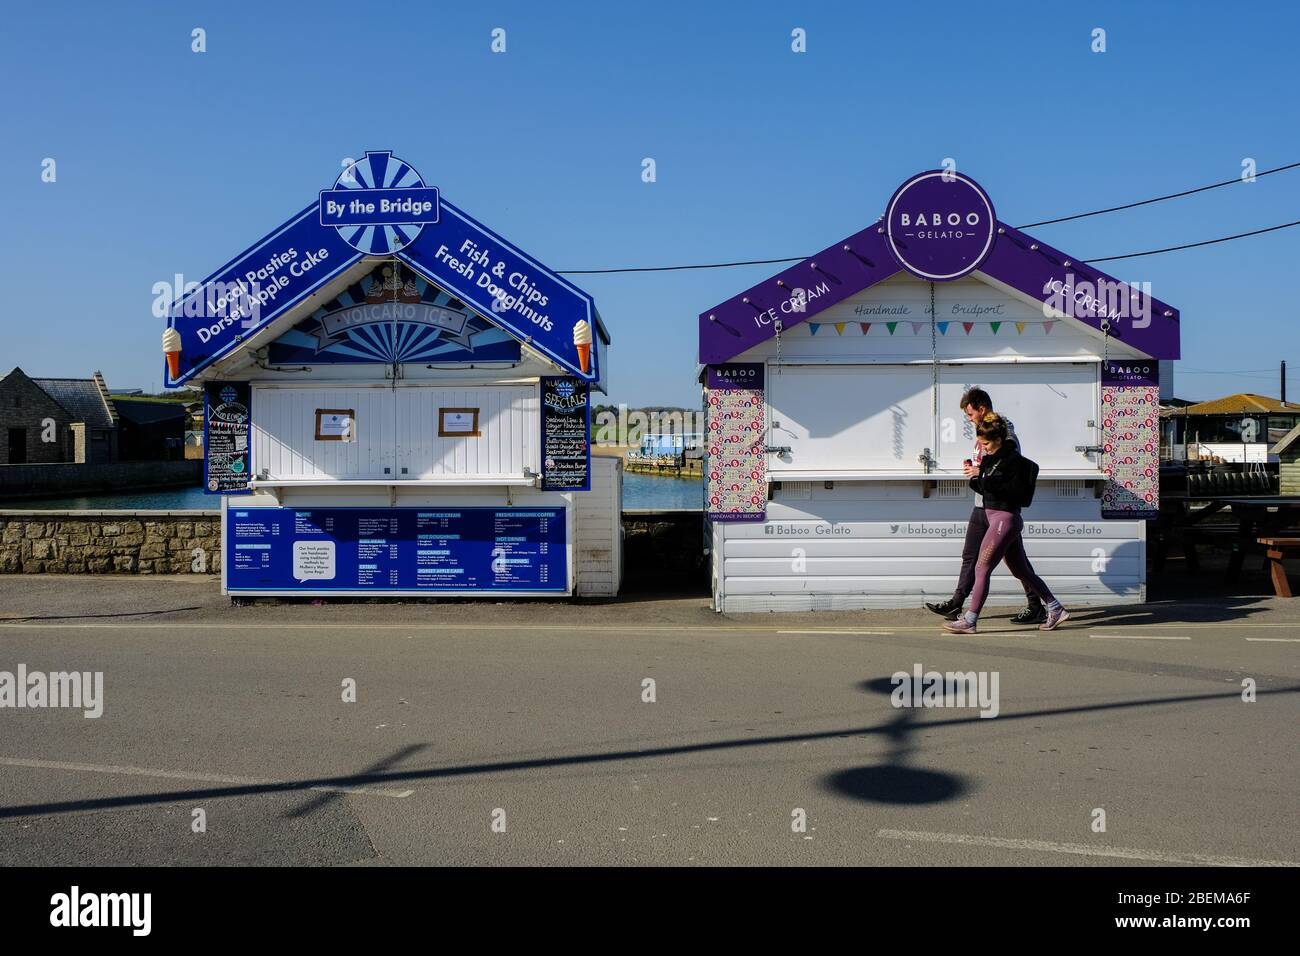 West Bay, Dorset, UK. 14th Apr, 2020. As the Coronavirus lockdown continues and tourist stay away from the normally crowded resort of West Bay the Office for Budget Responsibility says that the lockdown could shrink the GDP by 35%. Credit: Tom Corban/Alamy Live News Stock Photo